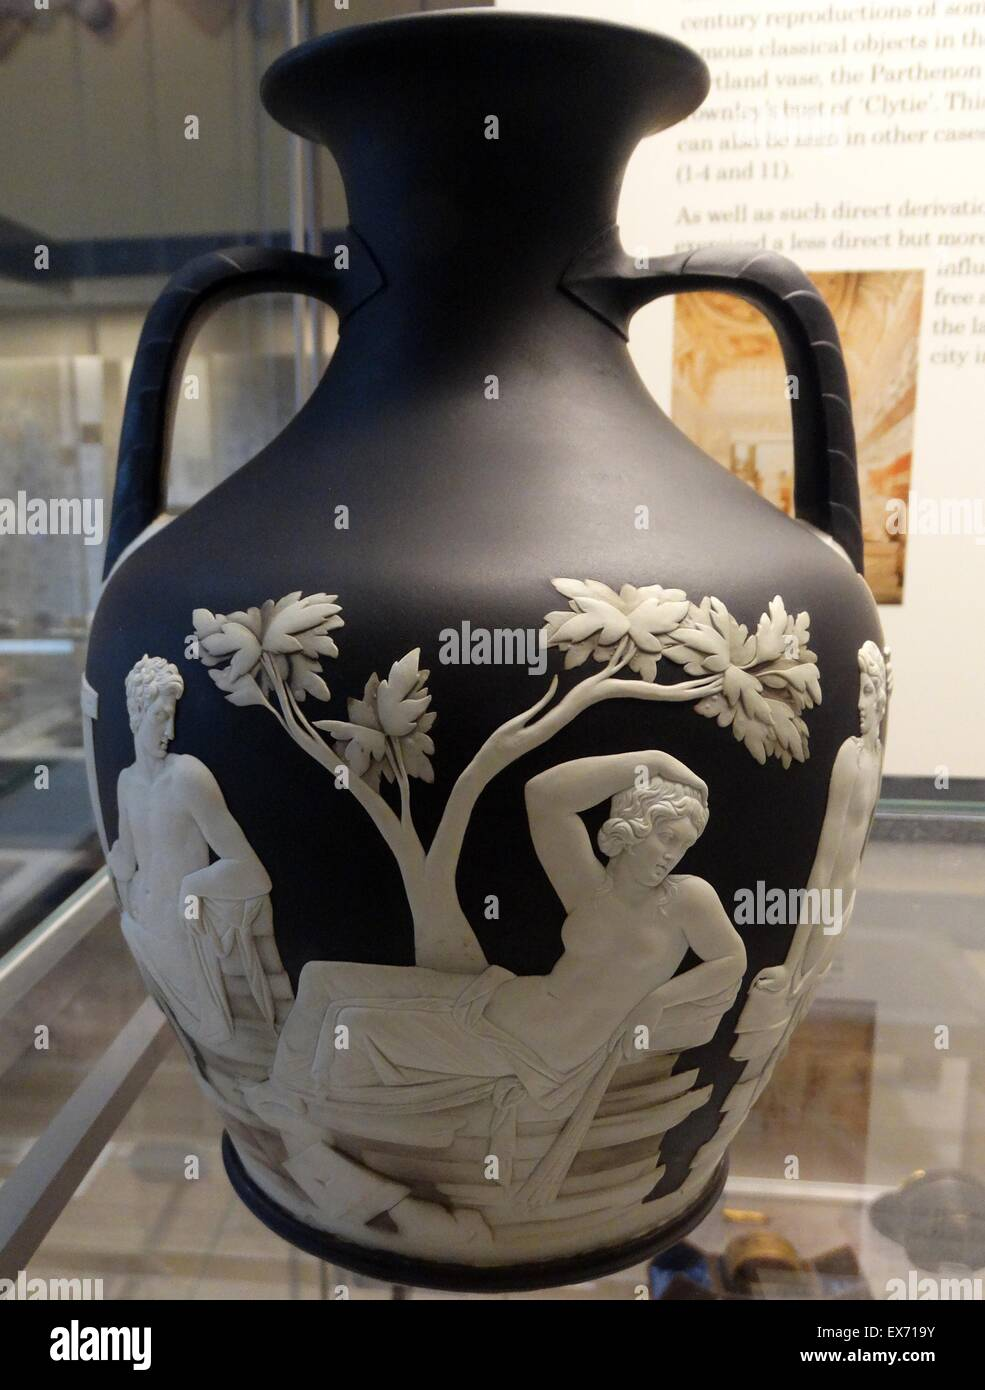 Copy of the portland vase by josiah wedgwood sons etruria copy of the portland vase by josiah wedgwood sons etruria known work of roman cameo staffordshire about 1790 glass in 1784 reviewsmspy